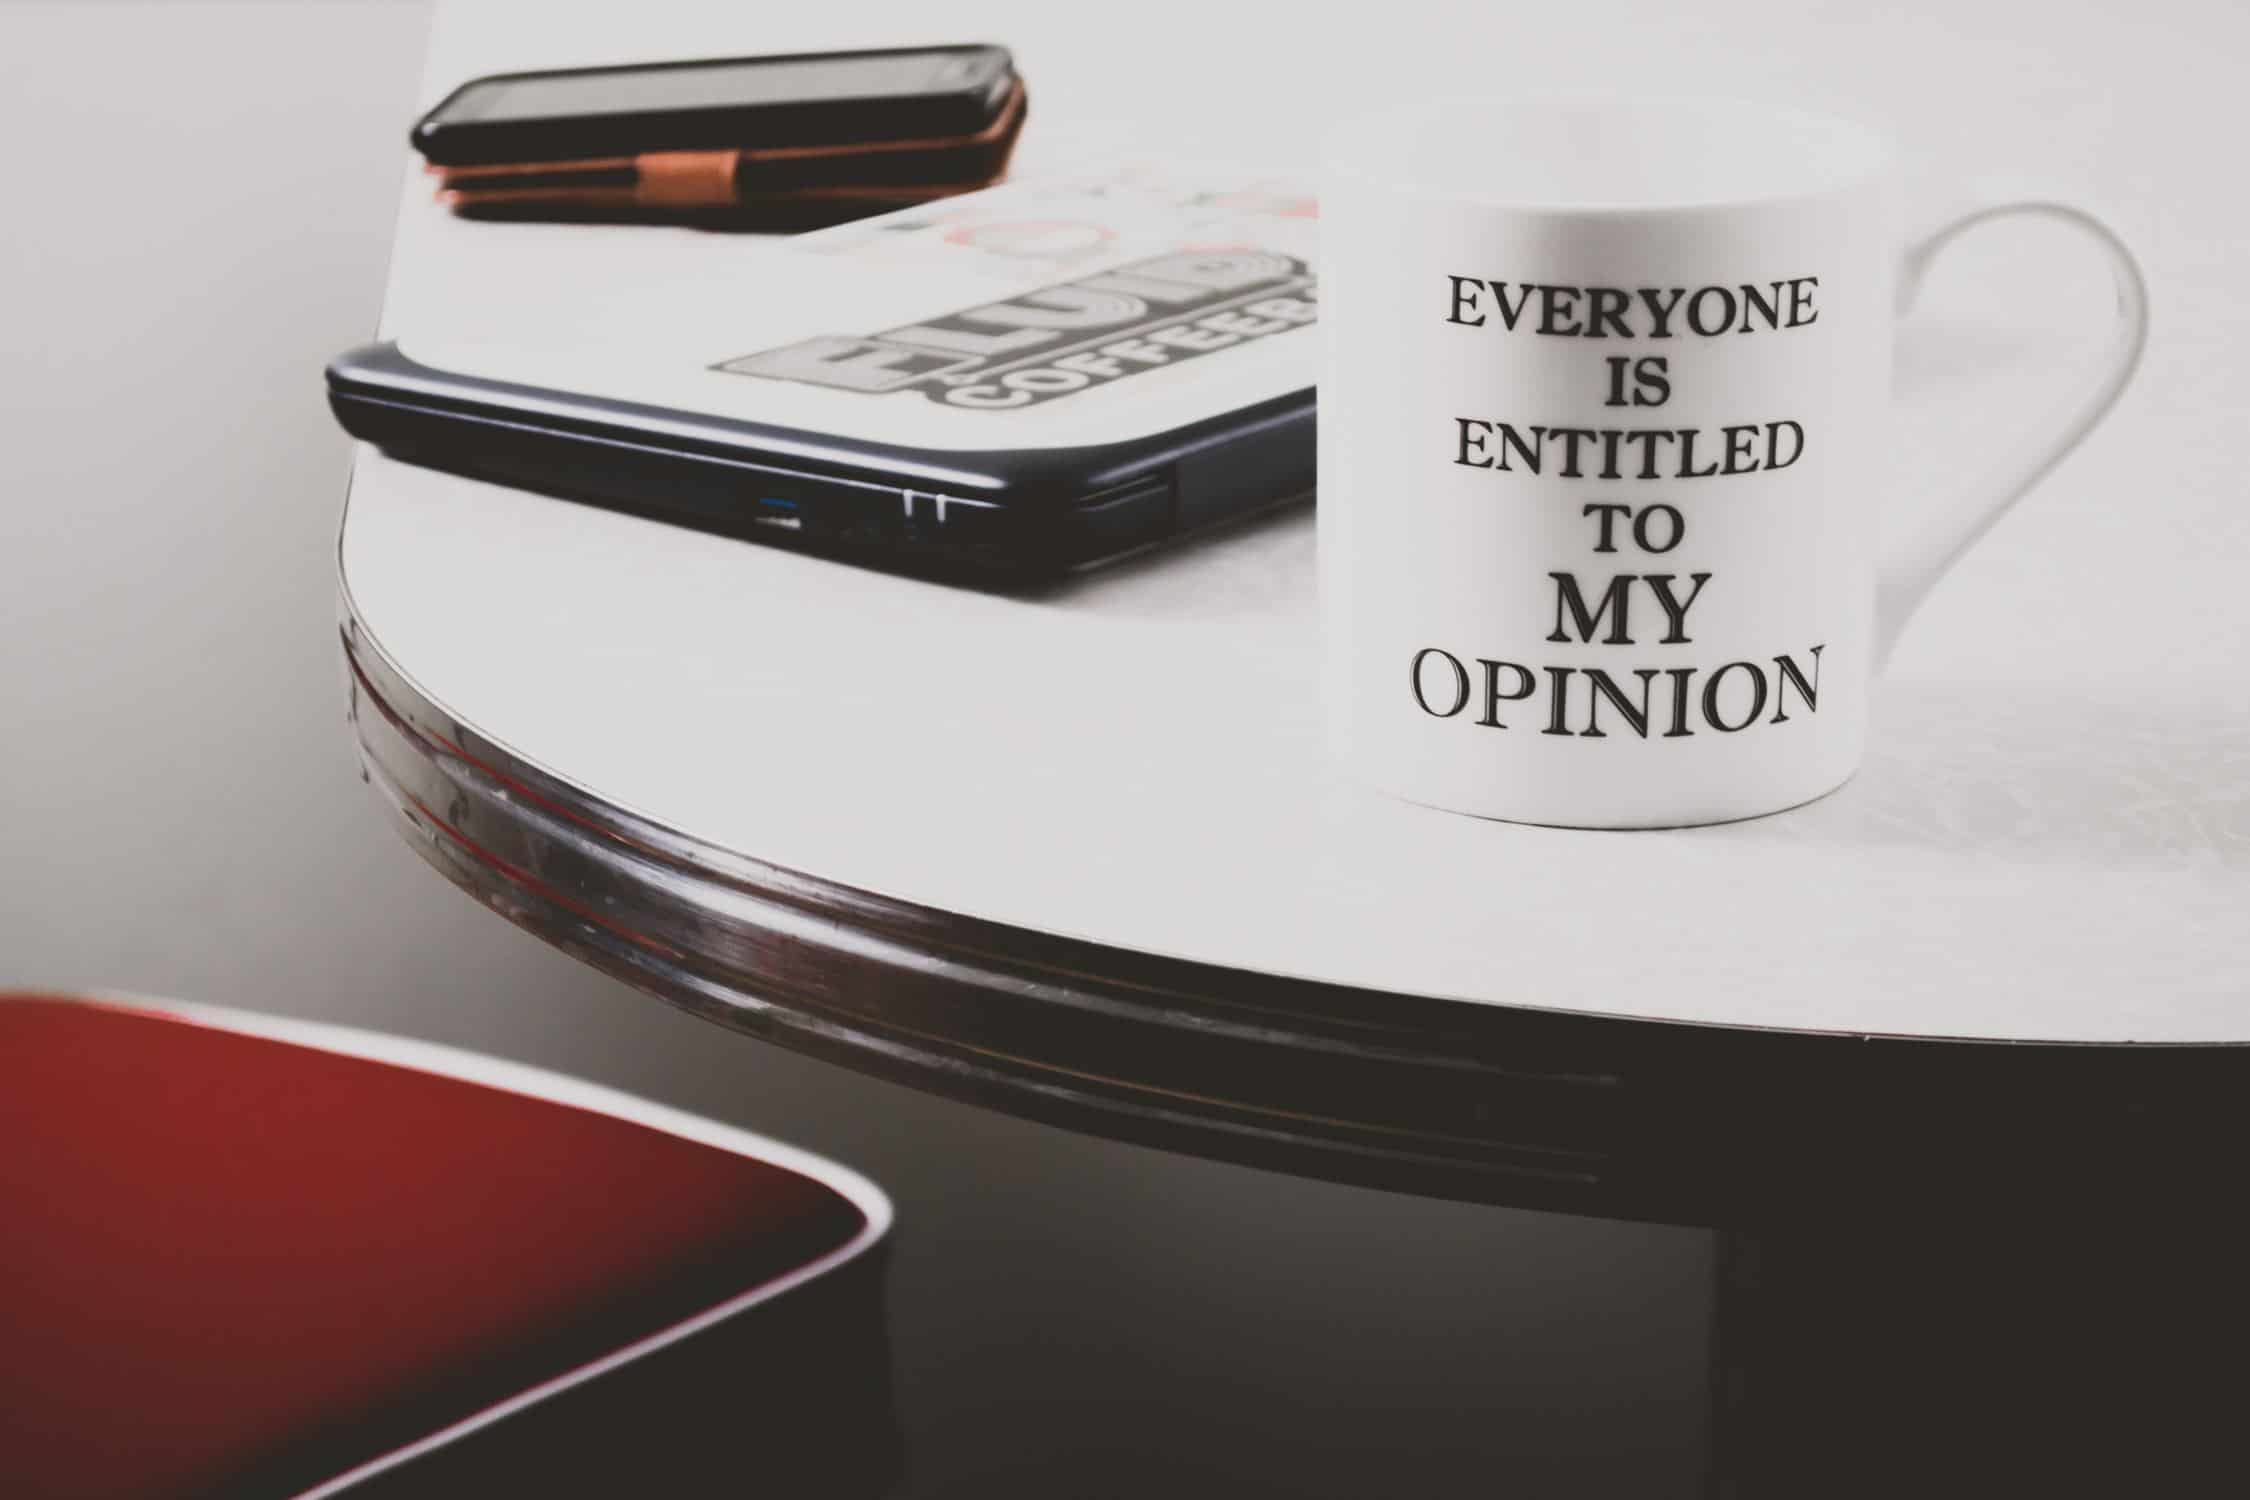 mug with writing on it 'Everyone is entitled to MY opinion'